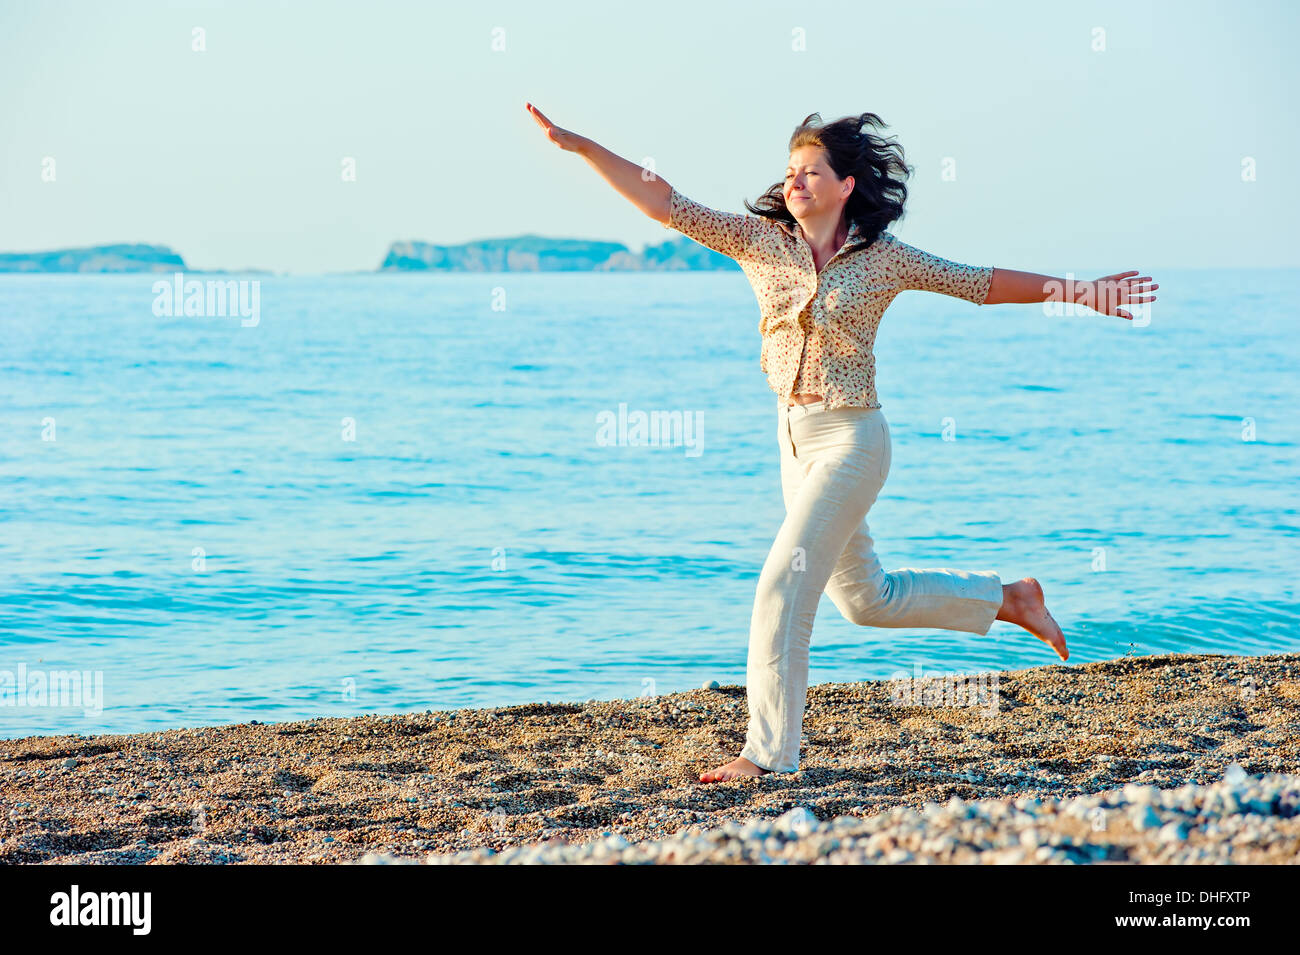 she actively moving on the shore near the sea - Stock Image